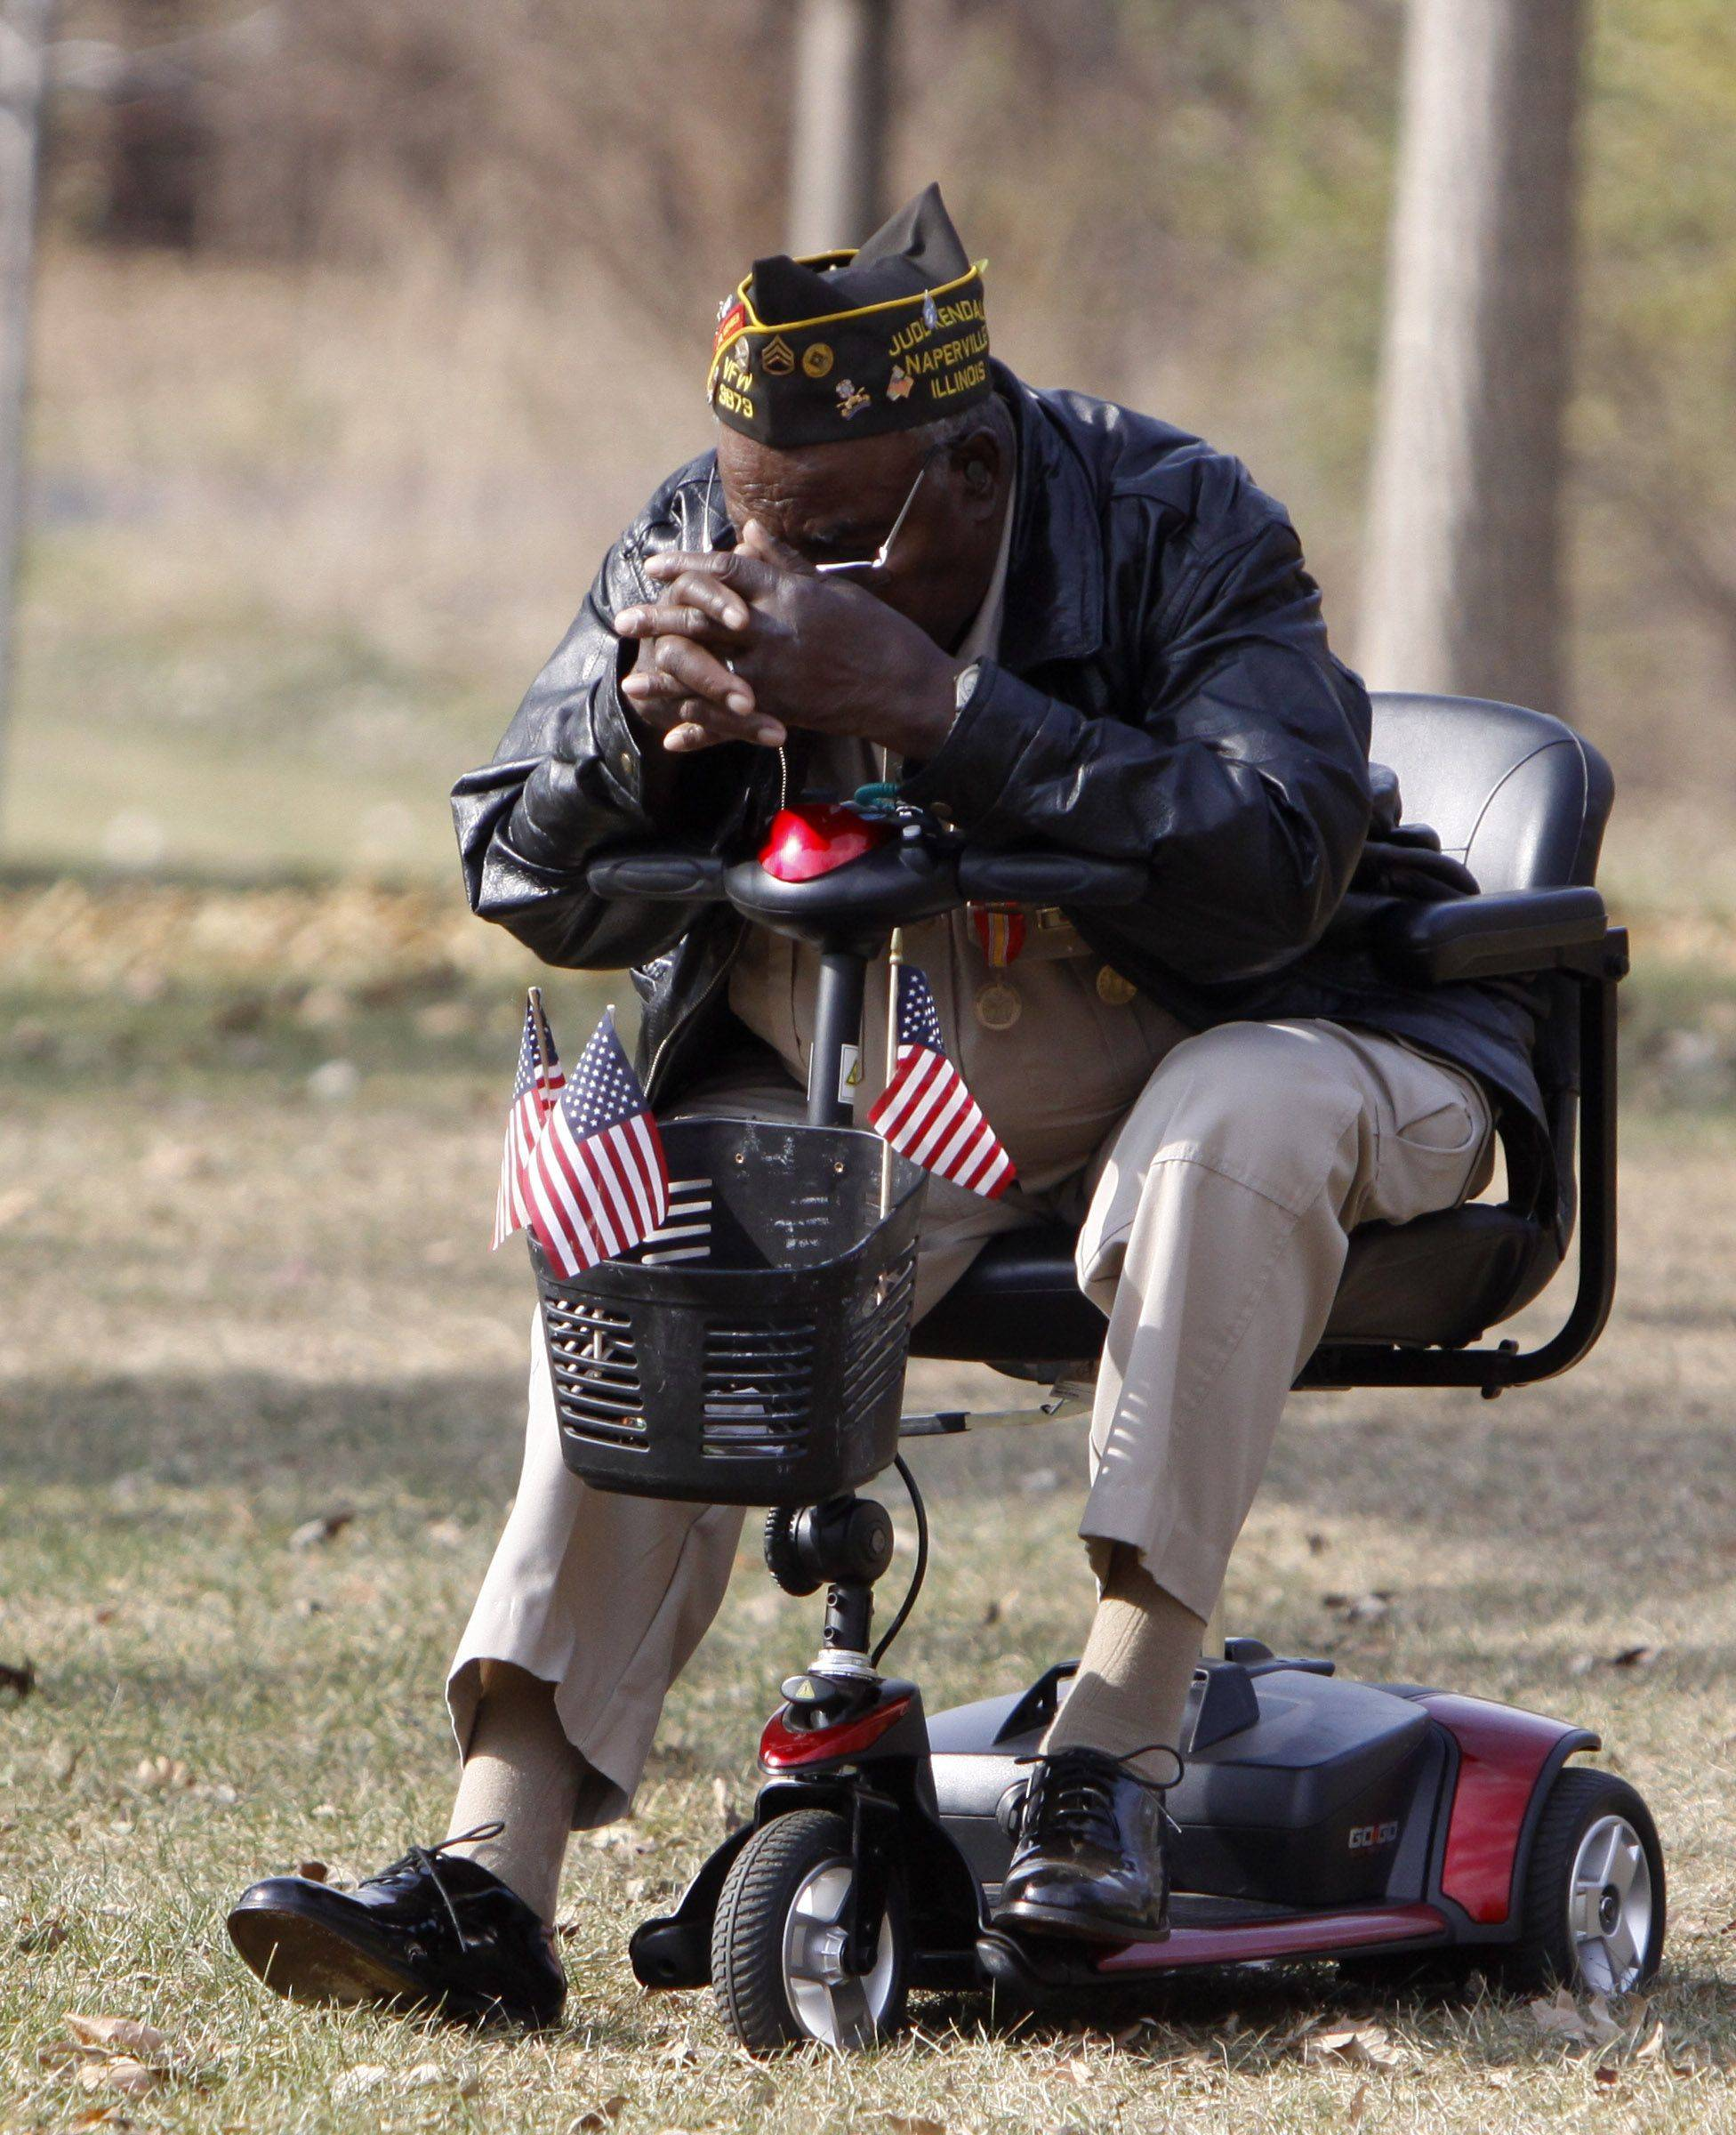 Colin Spiller of Naperville stood back from the crowd Thursday at Naperville's observance of Veterans Day at Veterans Park in Naperville. Spiller was a Staff Sergeant in the Army and was deployed on a 14 month tour in Korea.